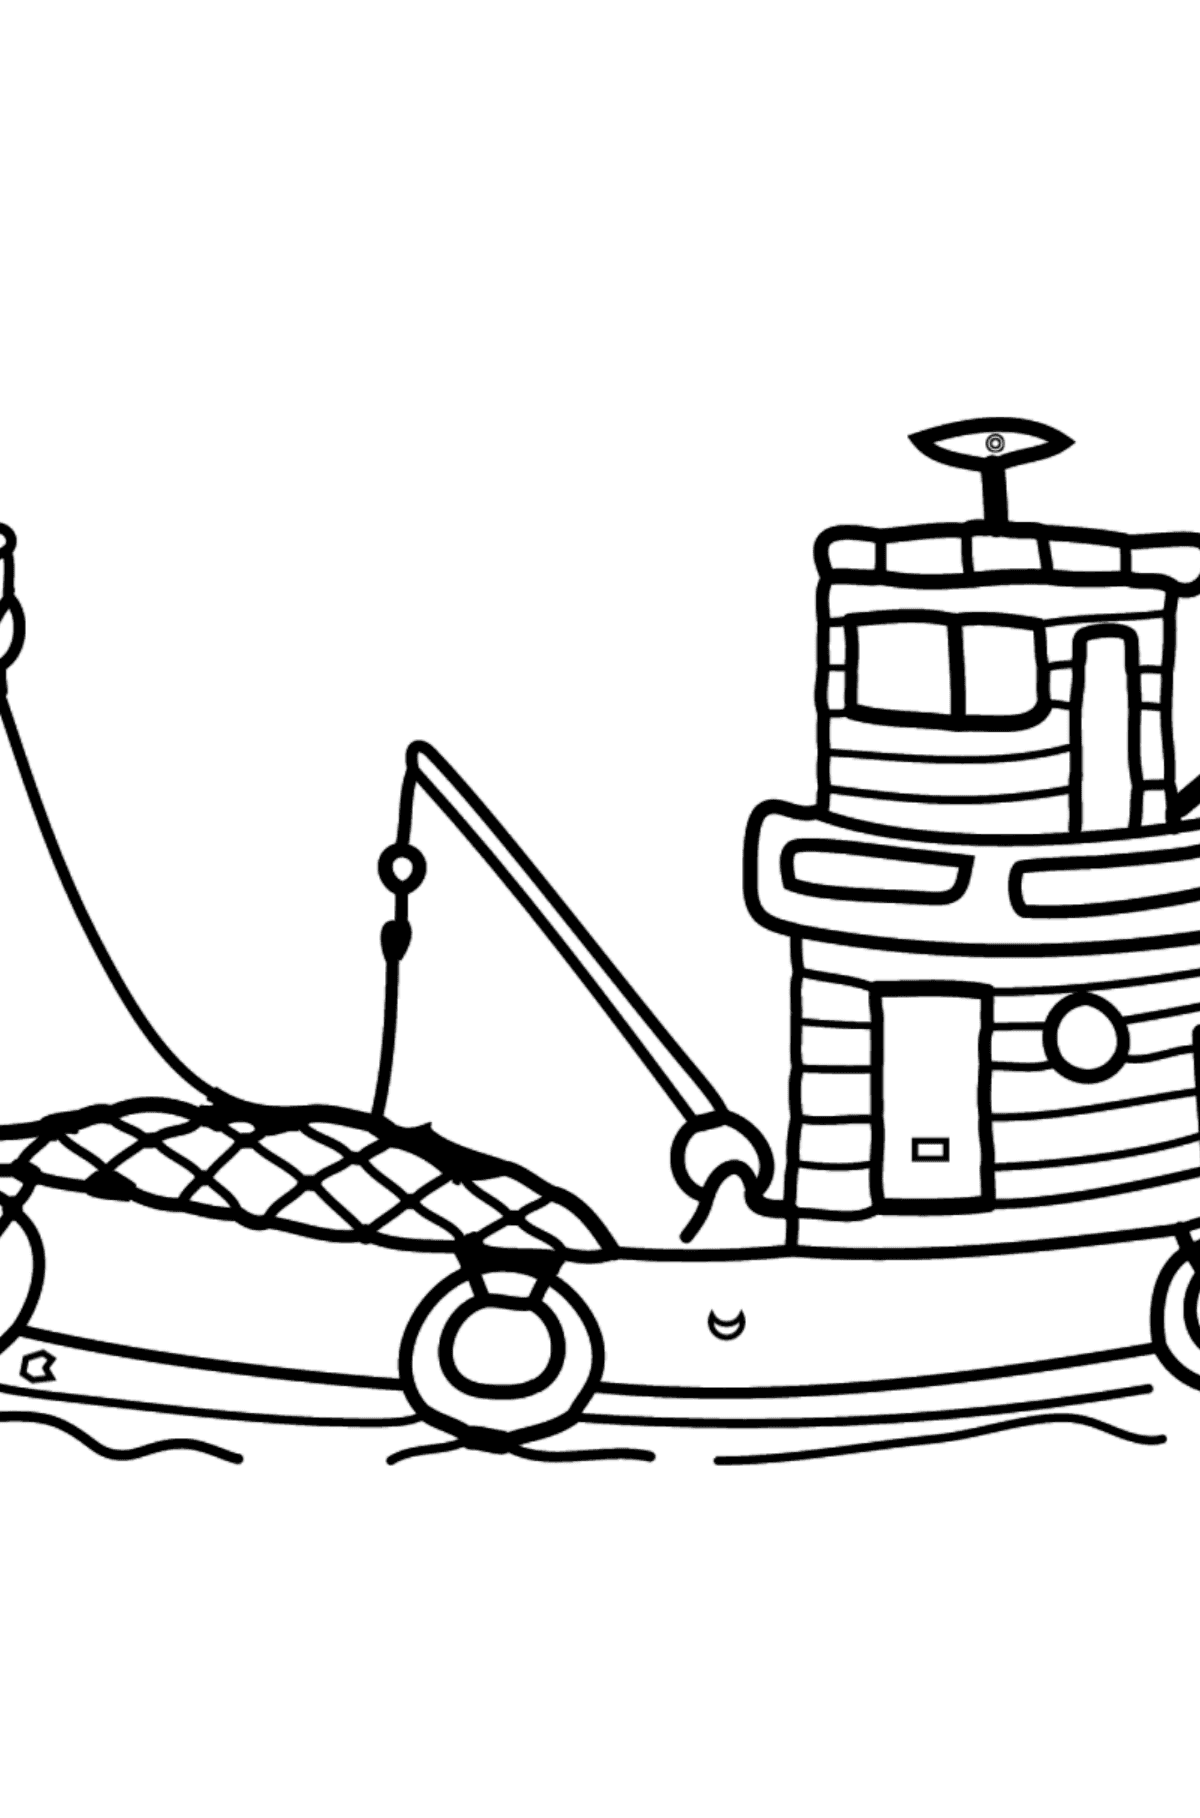 Coloring Page - A Fishing Boat - Coloring by Geometric Shapes for Kids